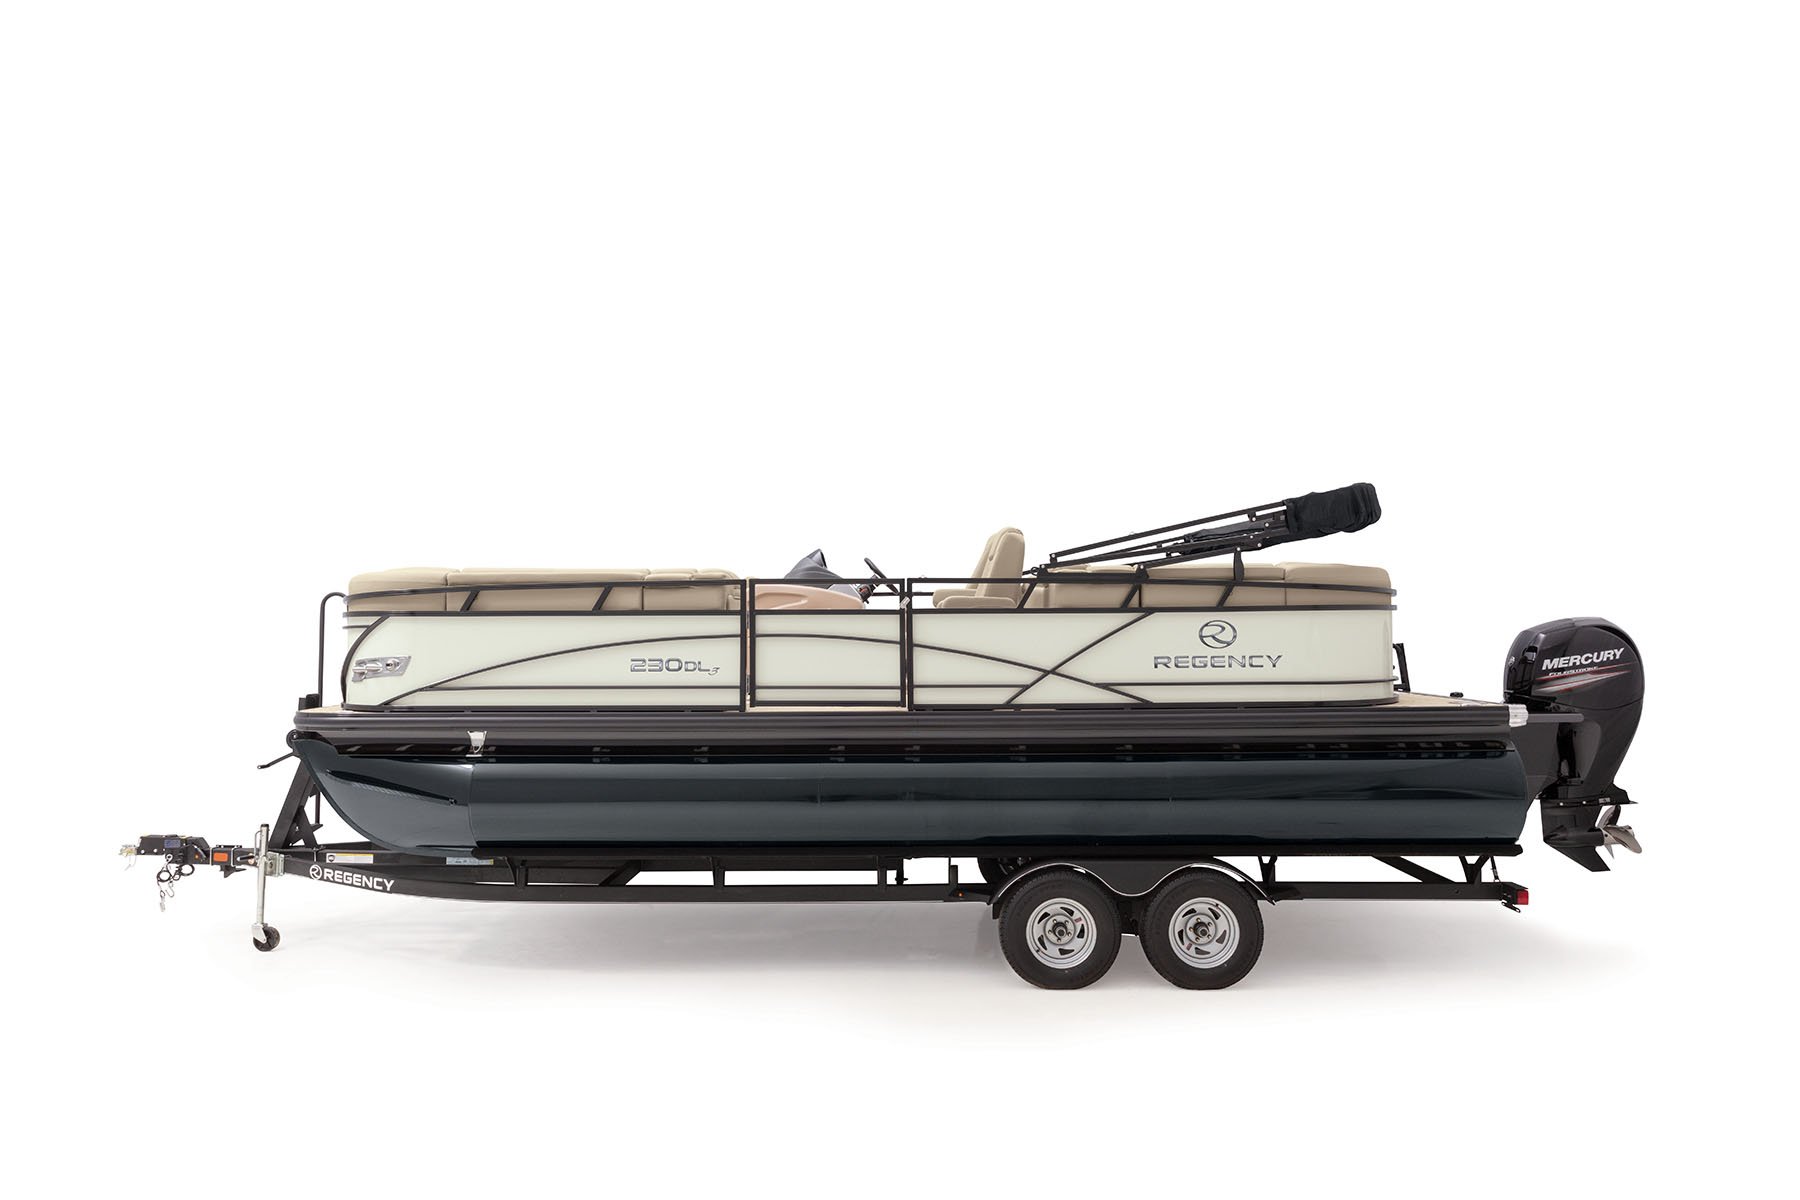 Profile view of 230 DL3 Pontoon